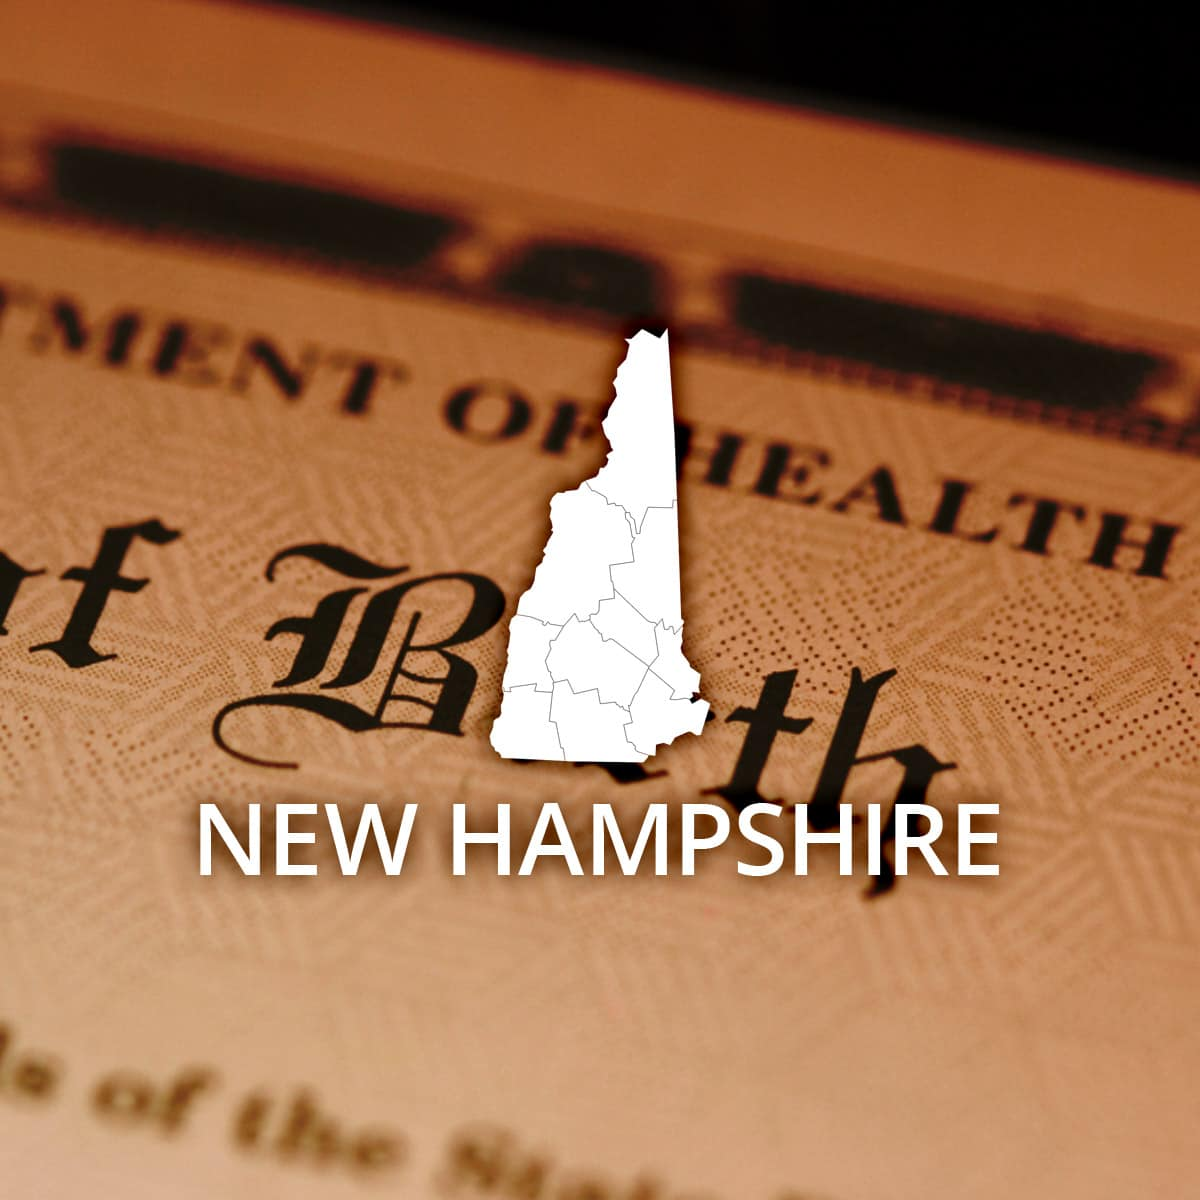 Where to Obtain a New Hampshire Birth Certificate